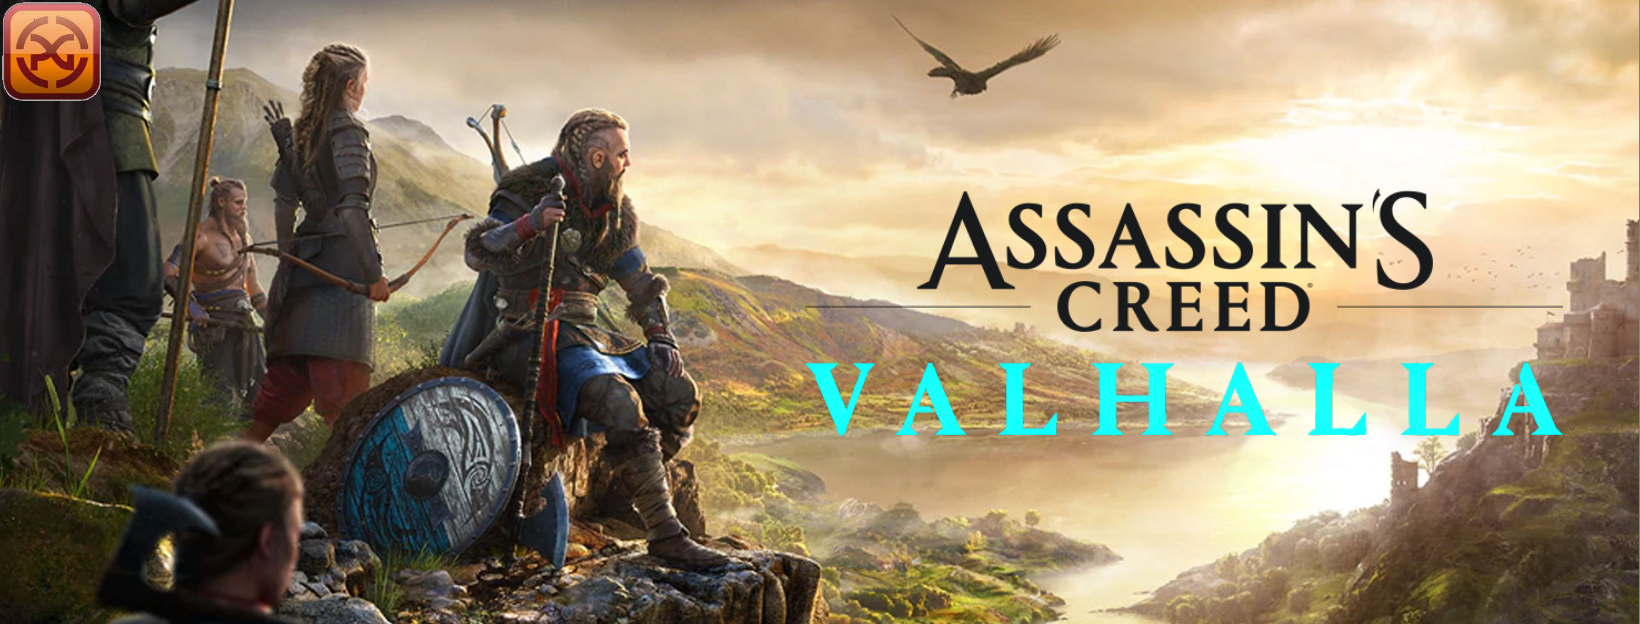 Assasins Creed Valhalla